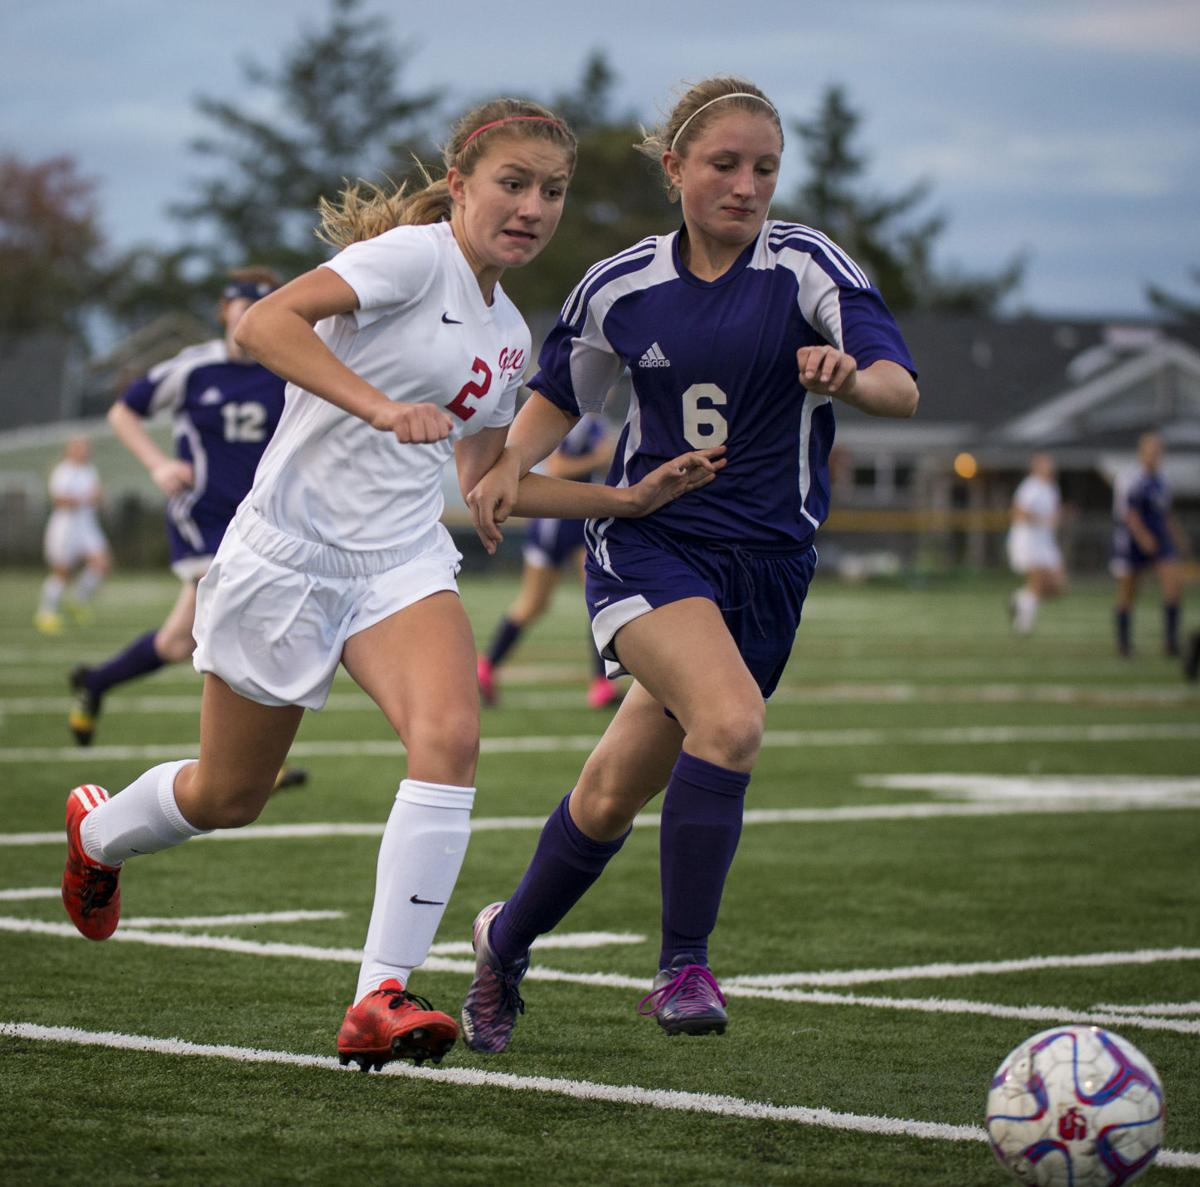 The tide is turning in Clatsop Clash soccer